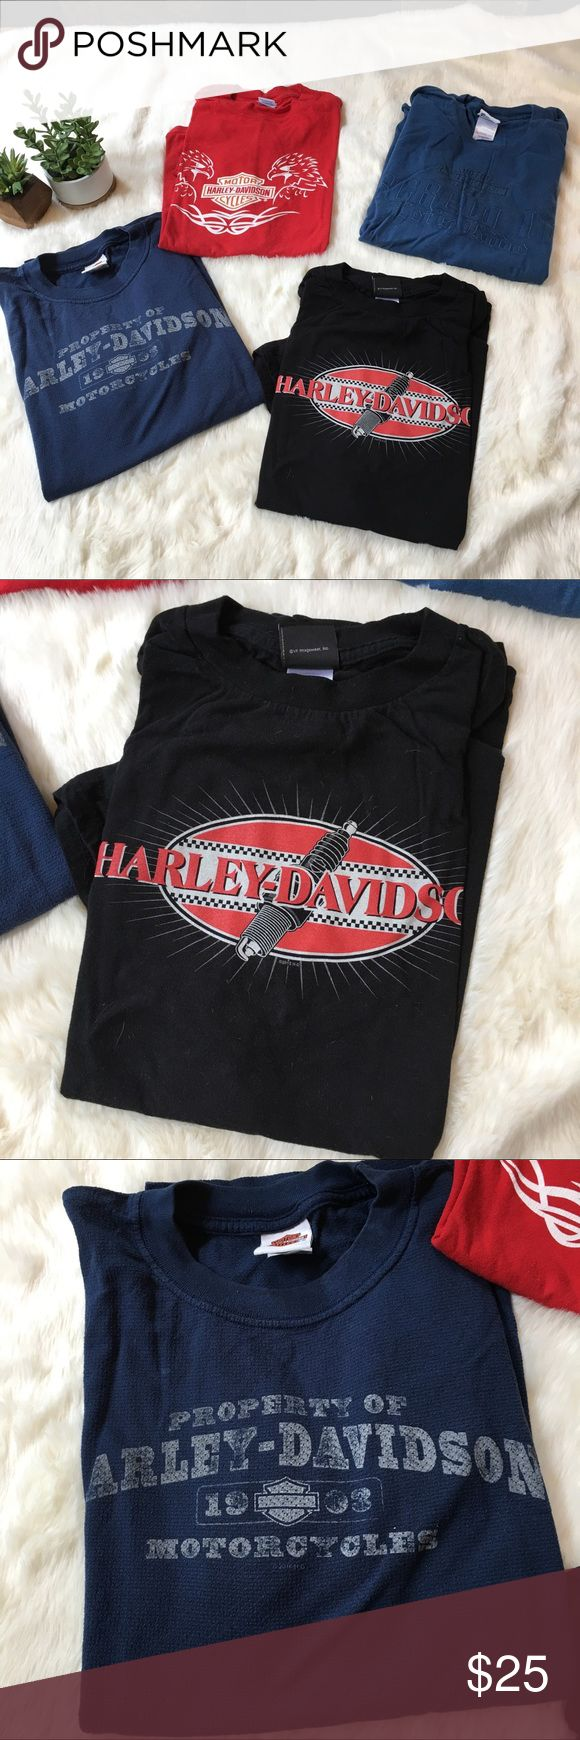 4 Harley Davidson t-shirts 4 gently used Harley shirts. 3 sized XL and 1 2X. From Harley dealers in CO, HI, Mexico & PA. Harley-Davidson Shirts Tees - Short Sleeve